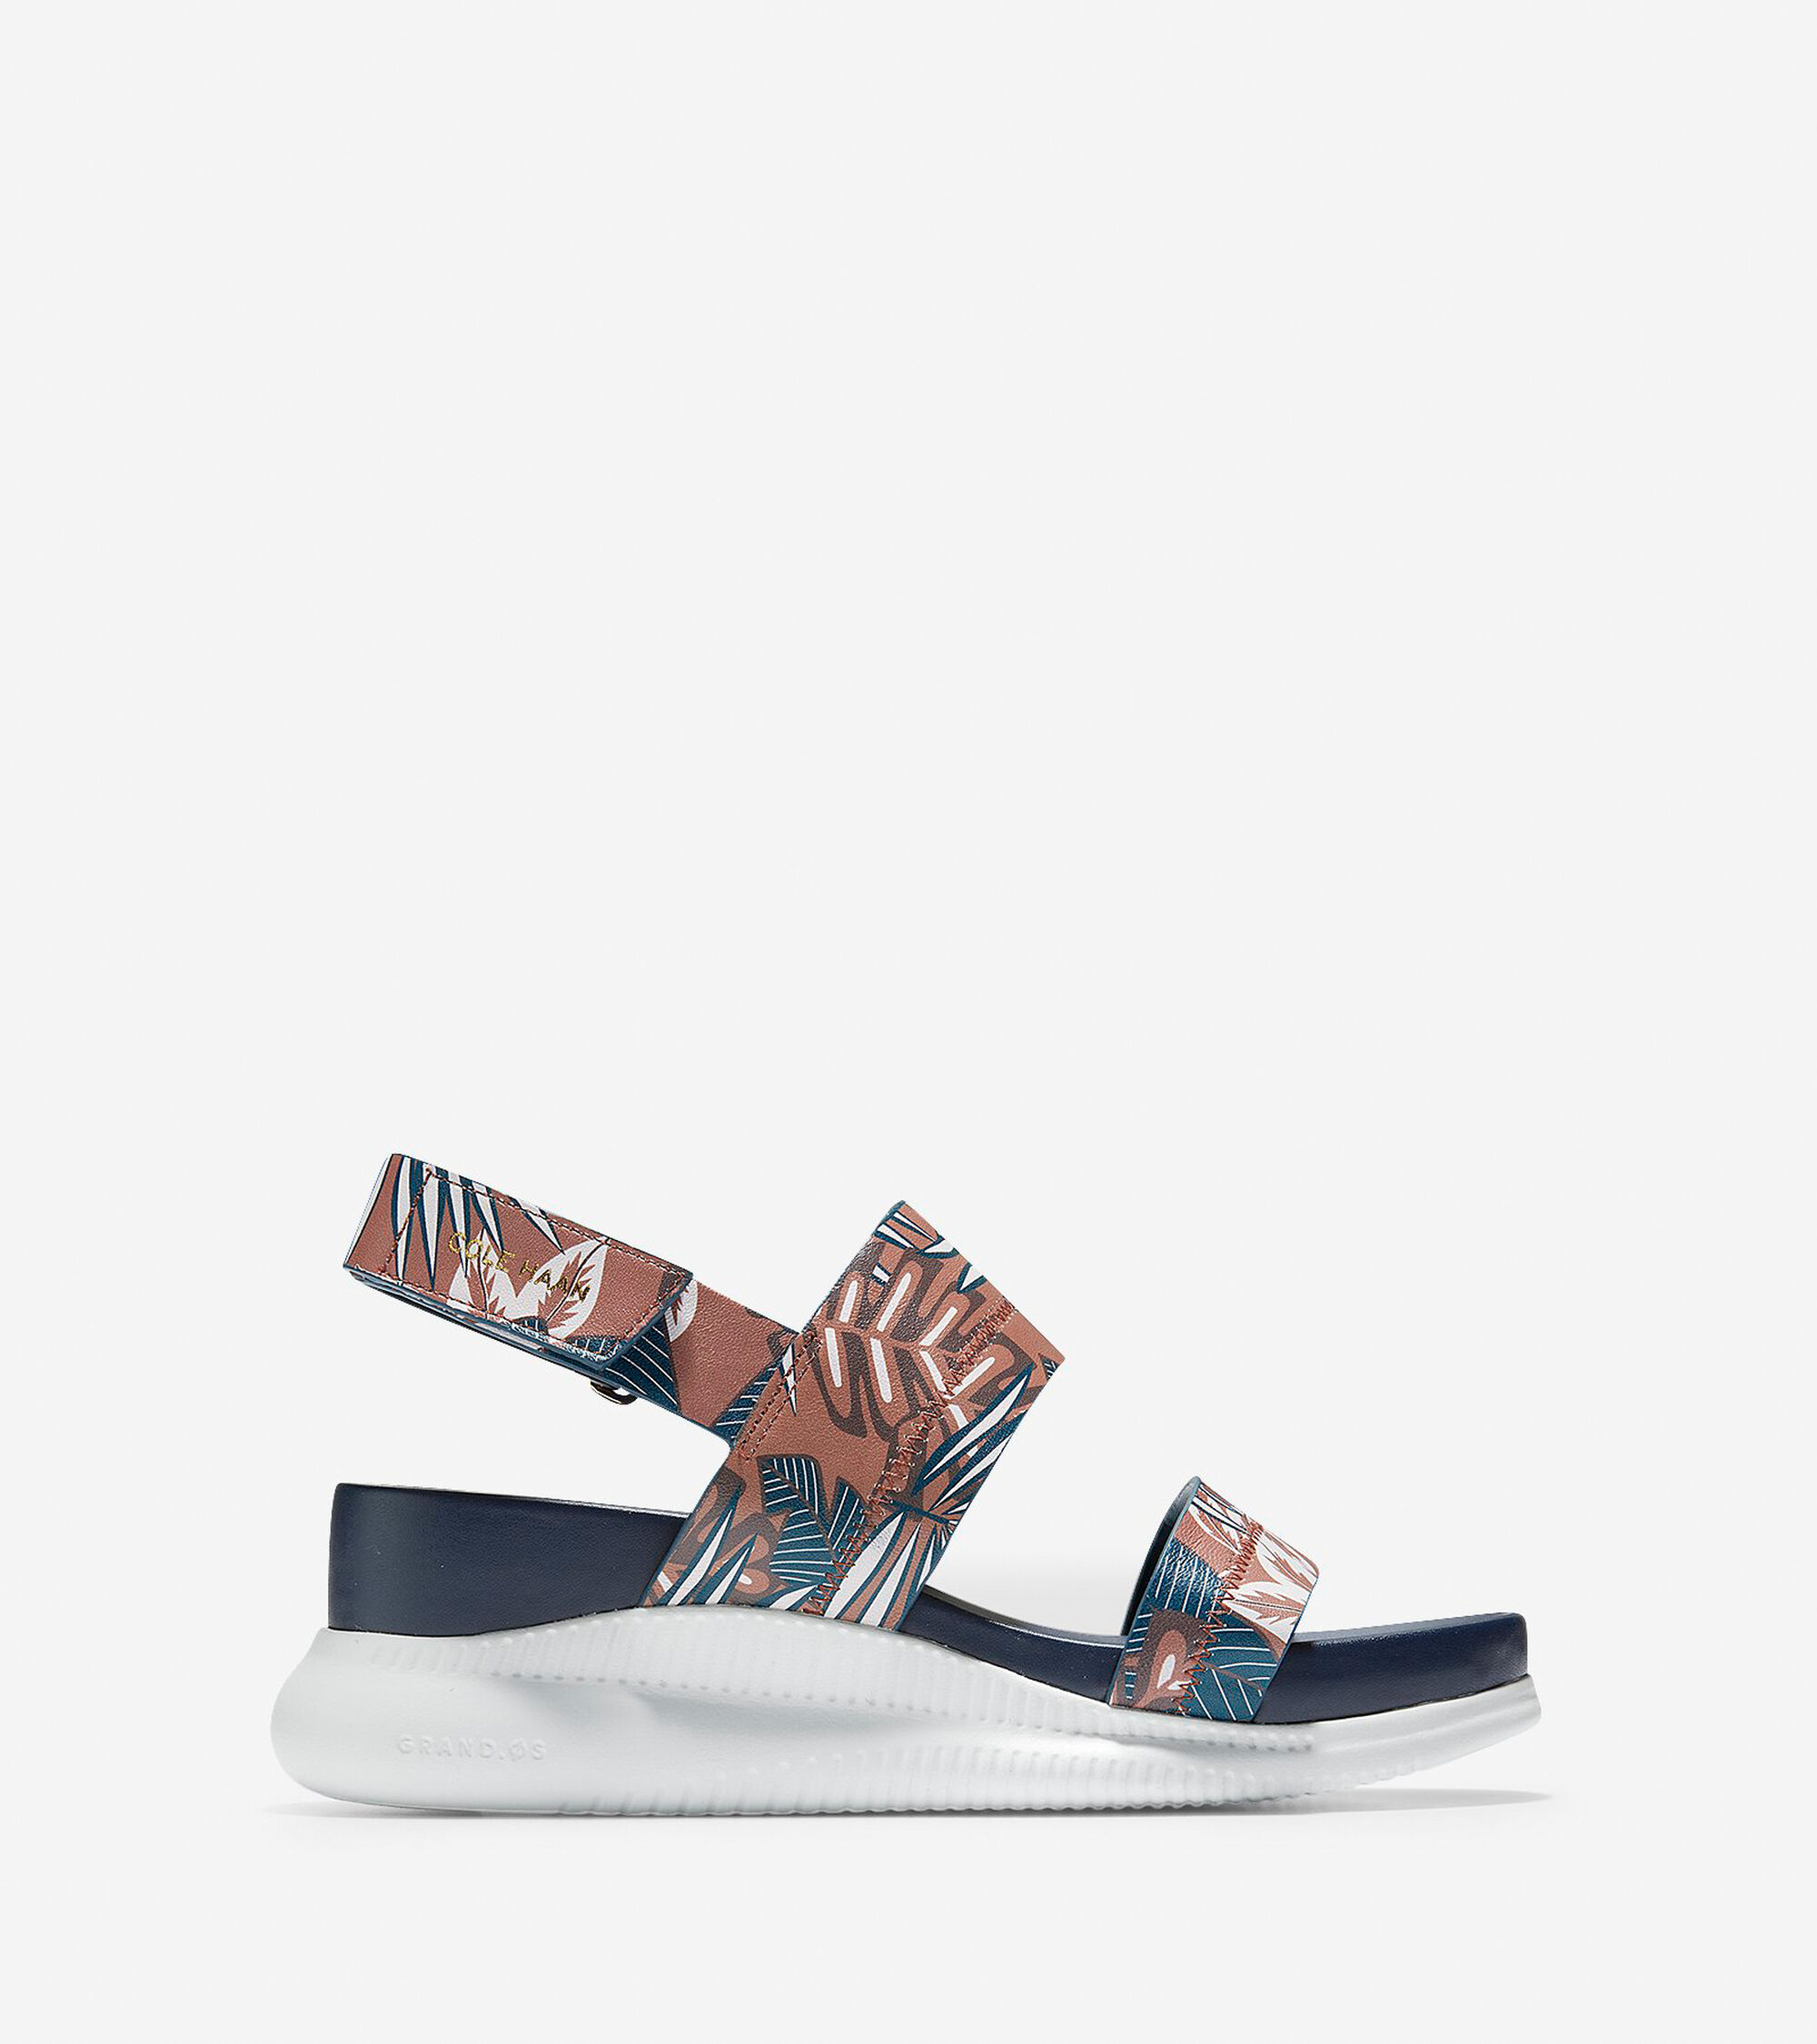 8216835623a Women s 2.ZEROGRAND Slide Sandals in Tropical Print